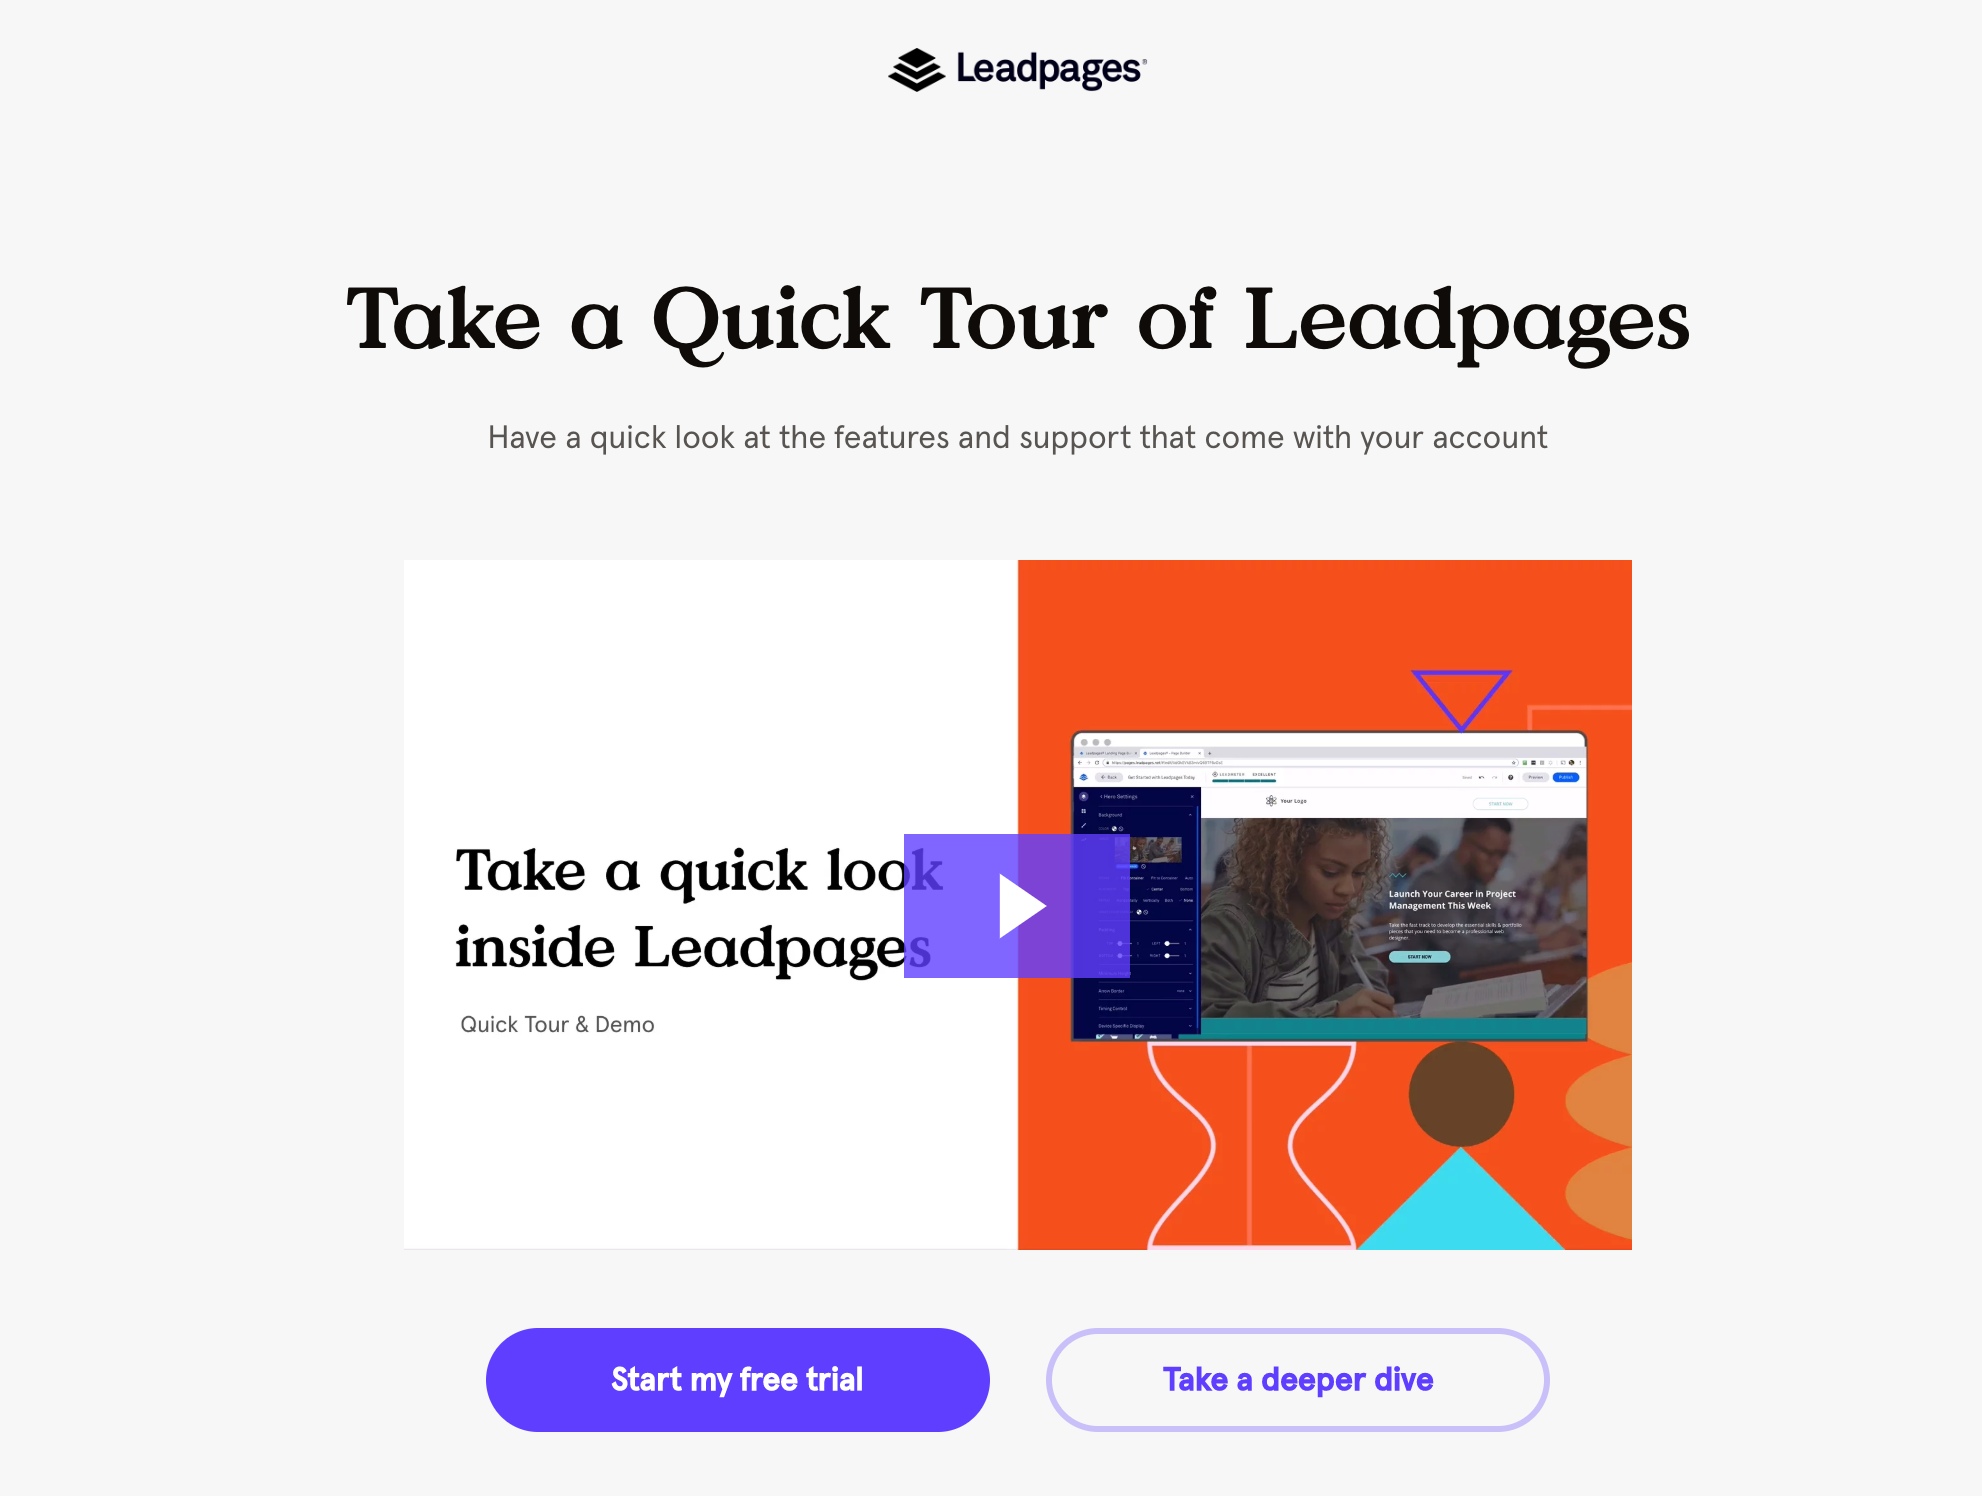 LeadPages Review- The Lead Generation Tool